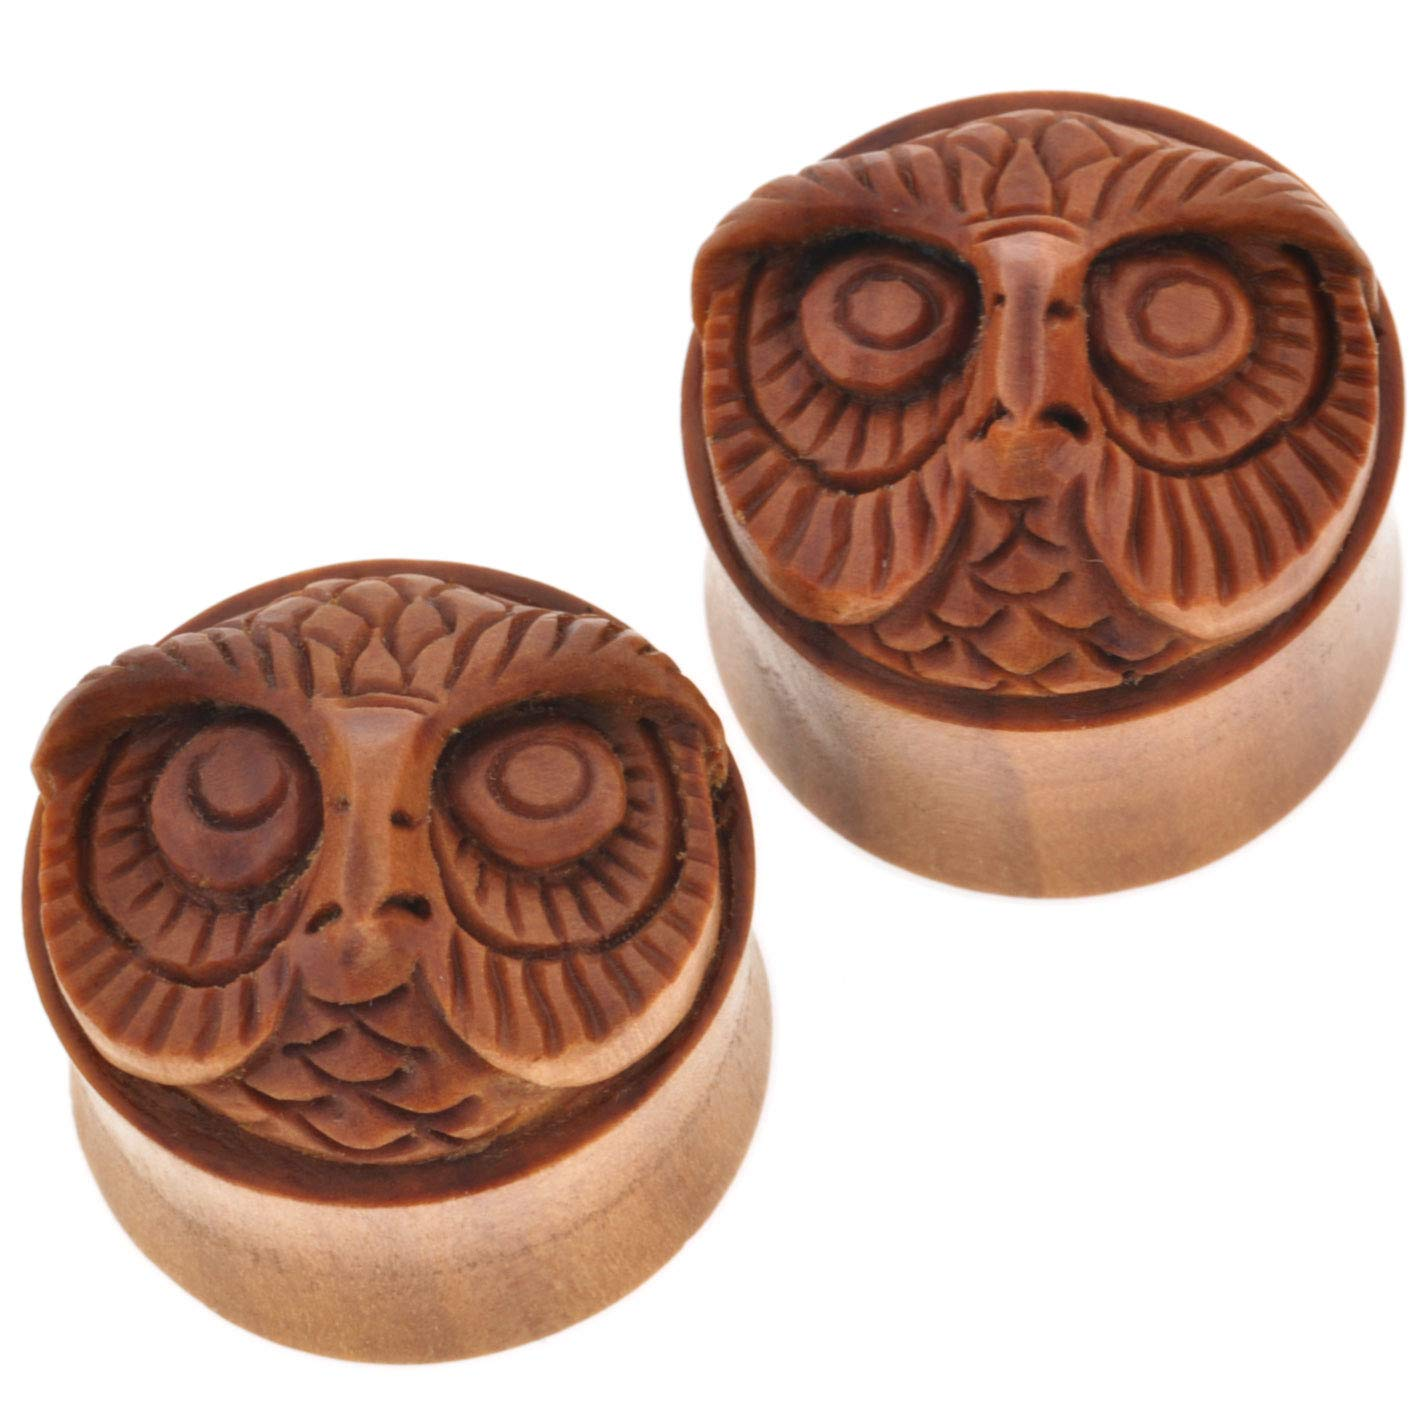 Pair of Sabo Wood Mr Owl Plugs